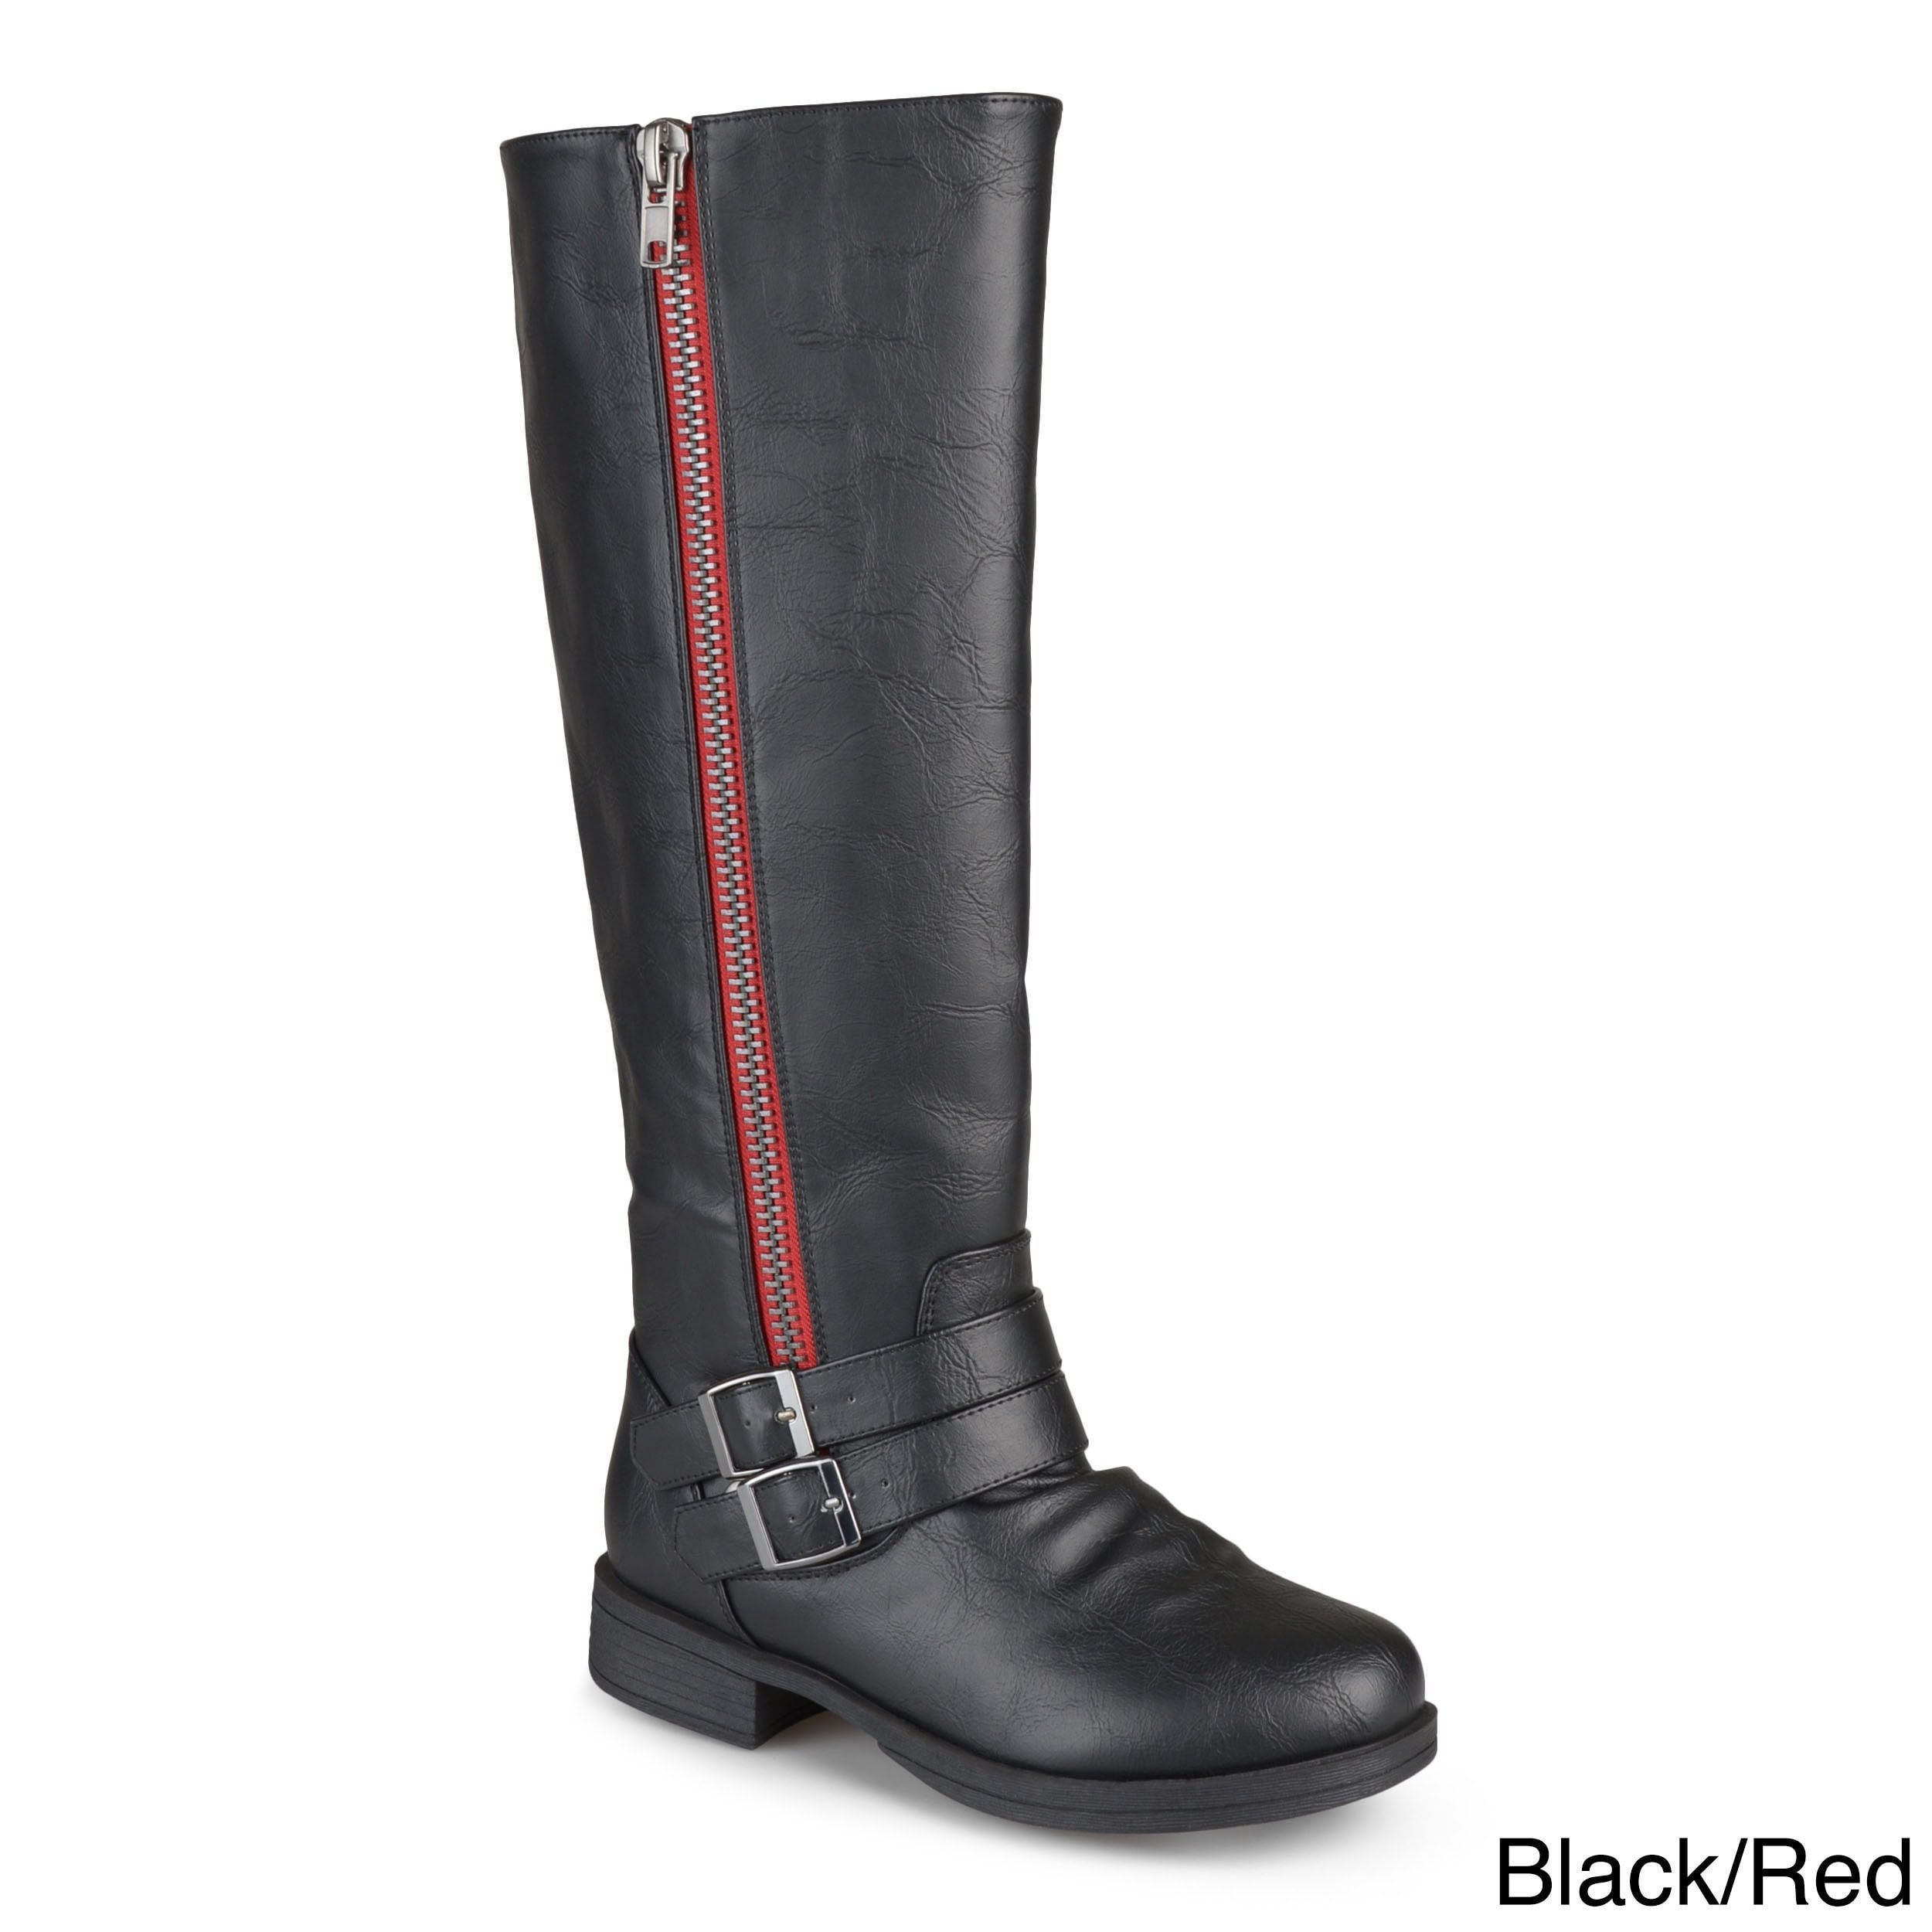 7941a01a18b5 Journee Collection Women s  Lady  Regular and Wide-calf Side-zipper  Knee-high Riding Boot (Black Red- 7.5) (leather)